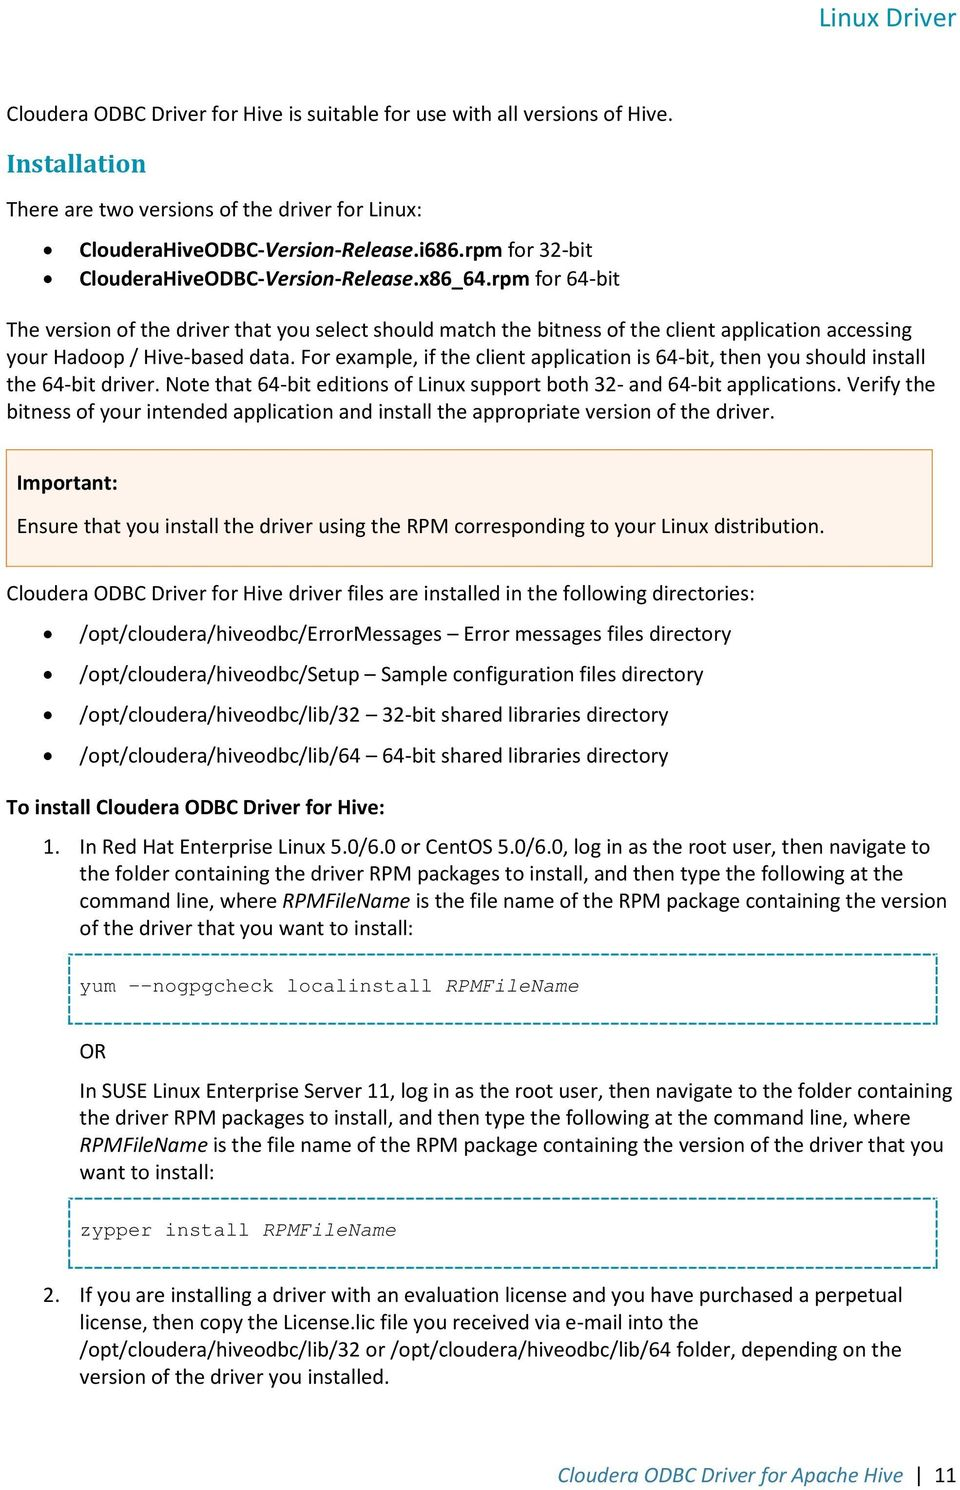 Cloudera ODBC Driver for Apache Hive Version PDF